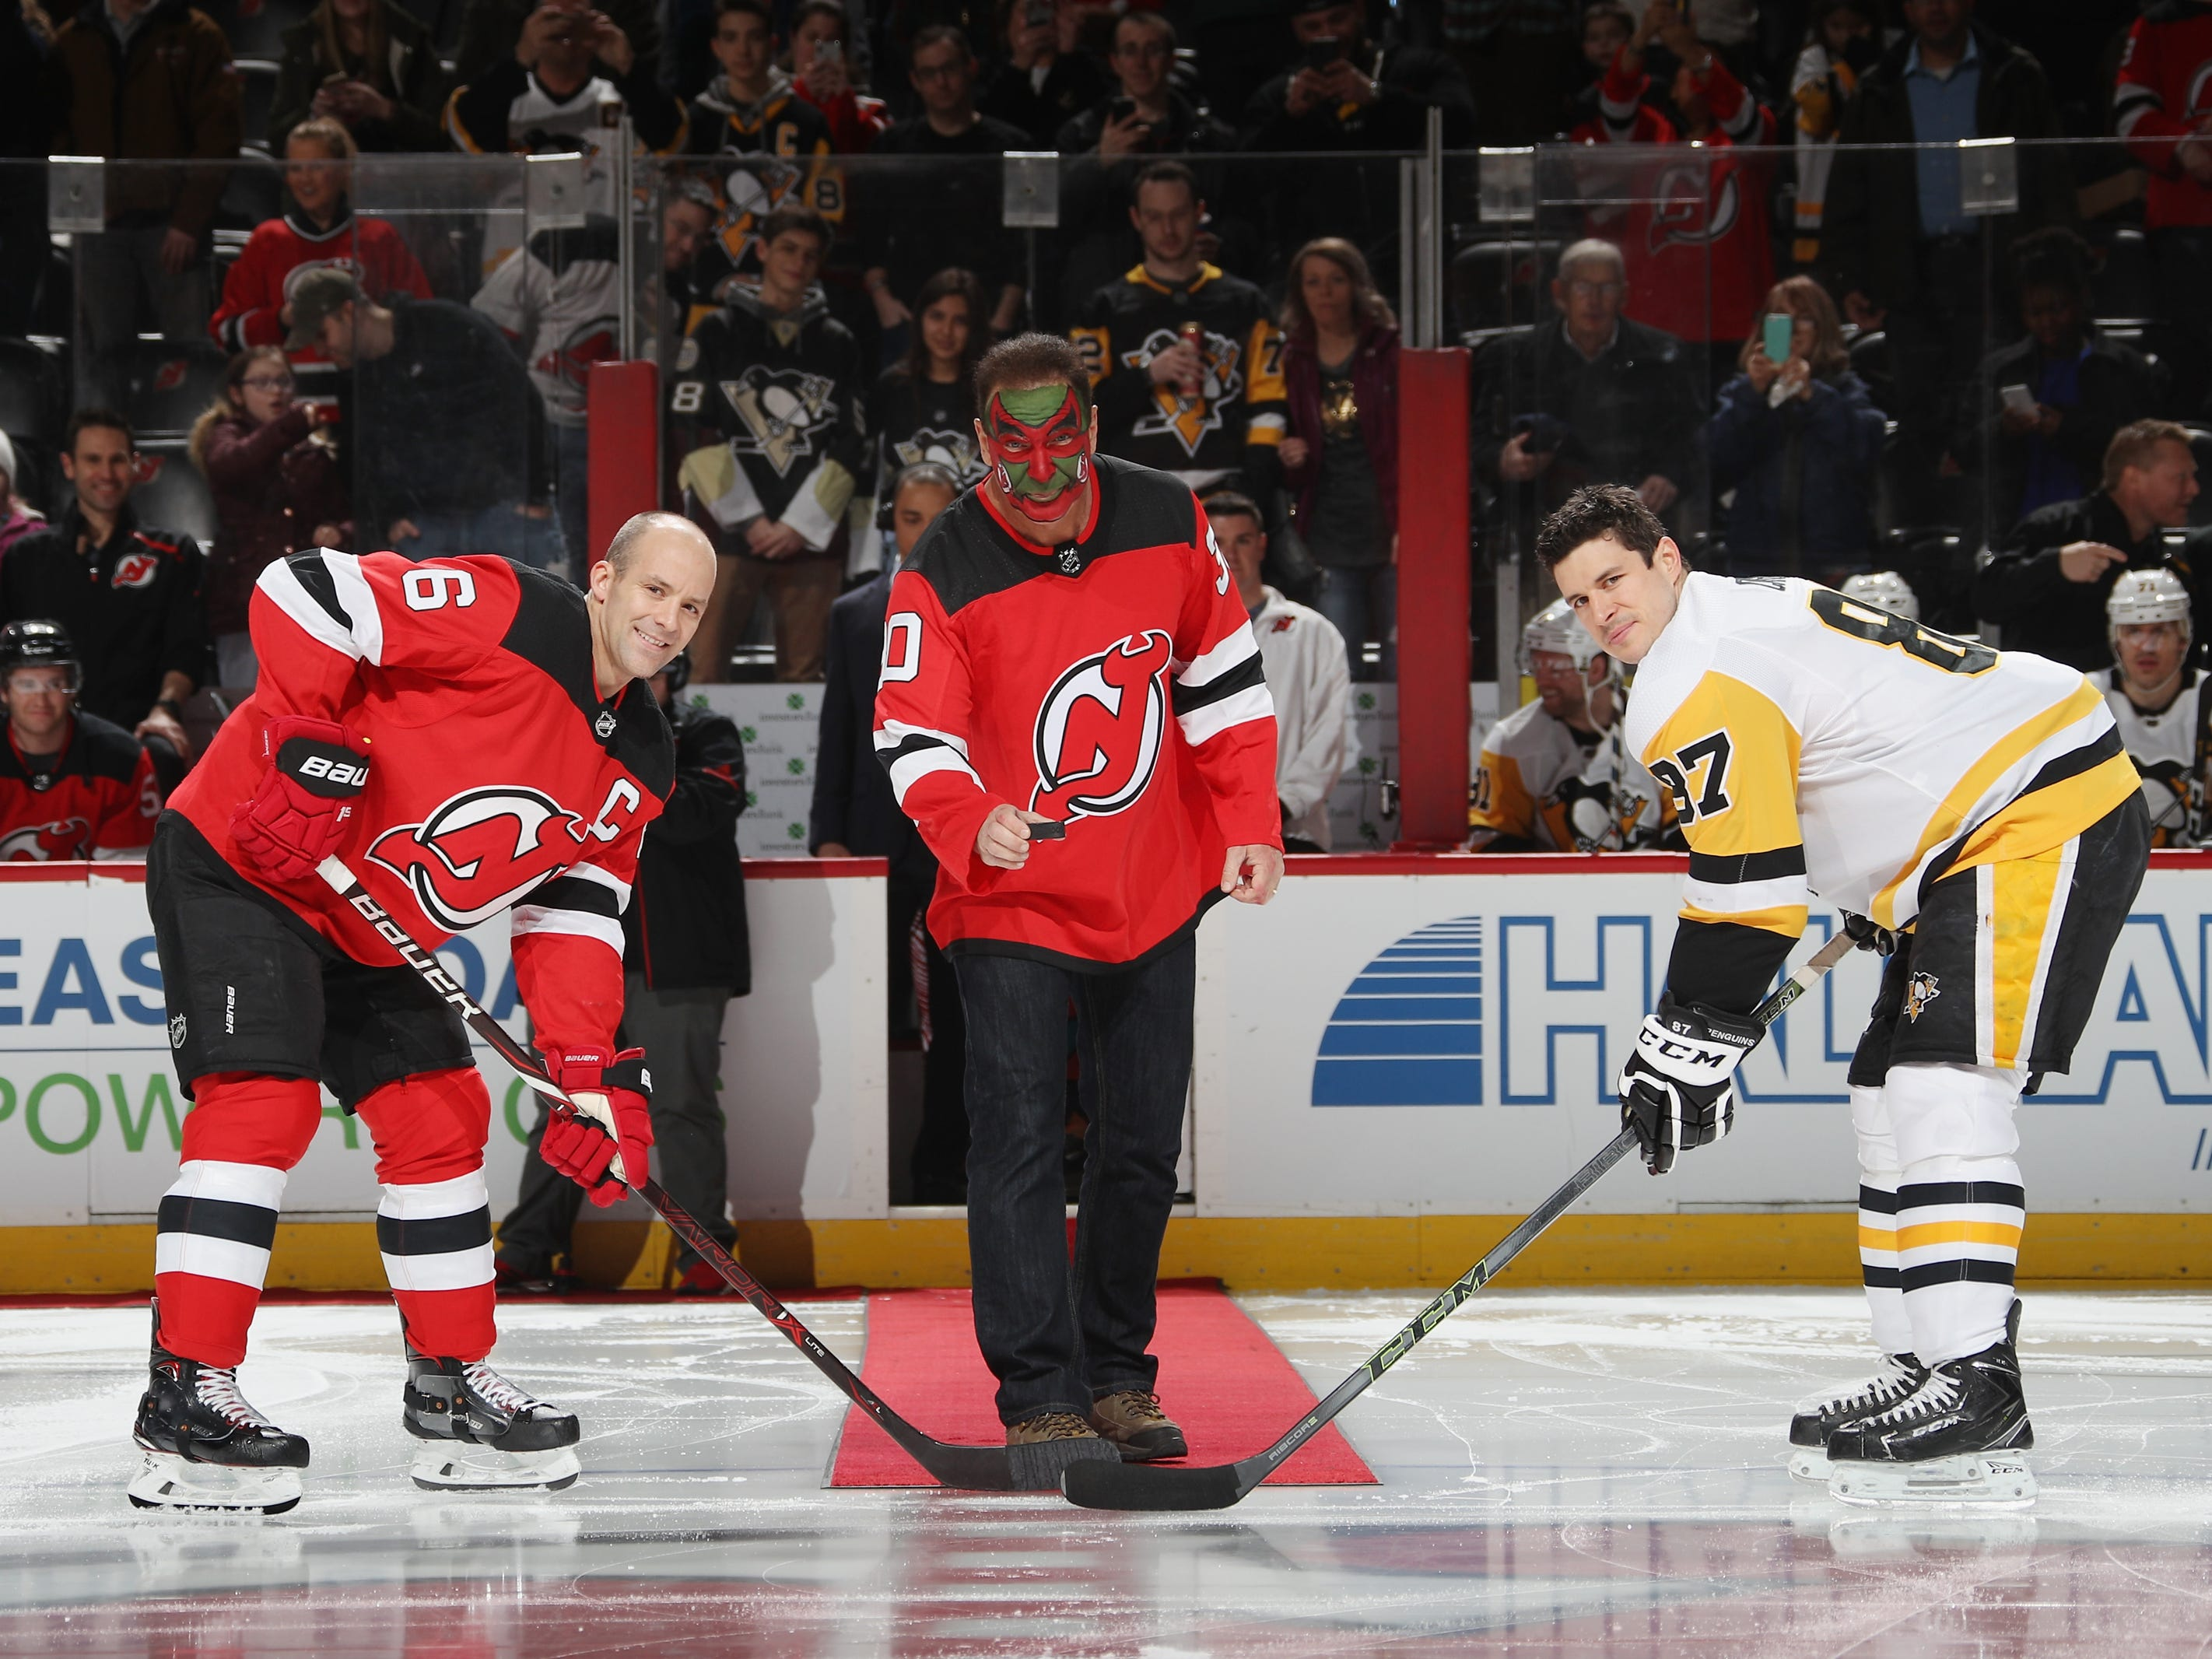 """Patrick Warburton who played the part of David Puddy on the TV show """"Seinfeld"""" drops the puck between Andy Greene #6 of the New Jersey Devils and Sidney Crosby #87 of the Pittsburgh Penguins at the Prudential Center on February 19, 2019 in Newark, New Jersey."""